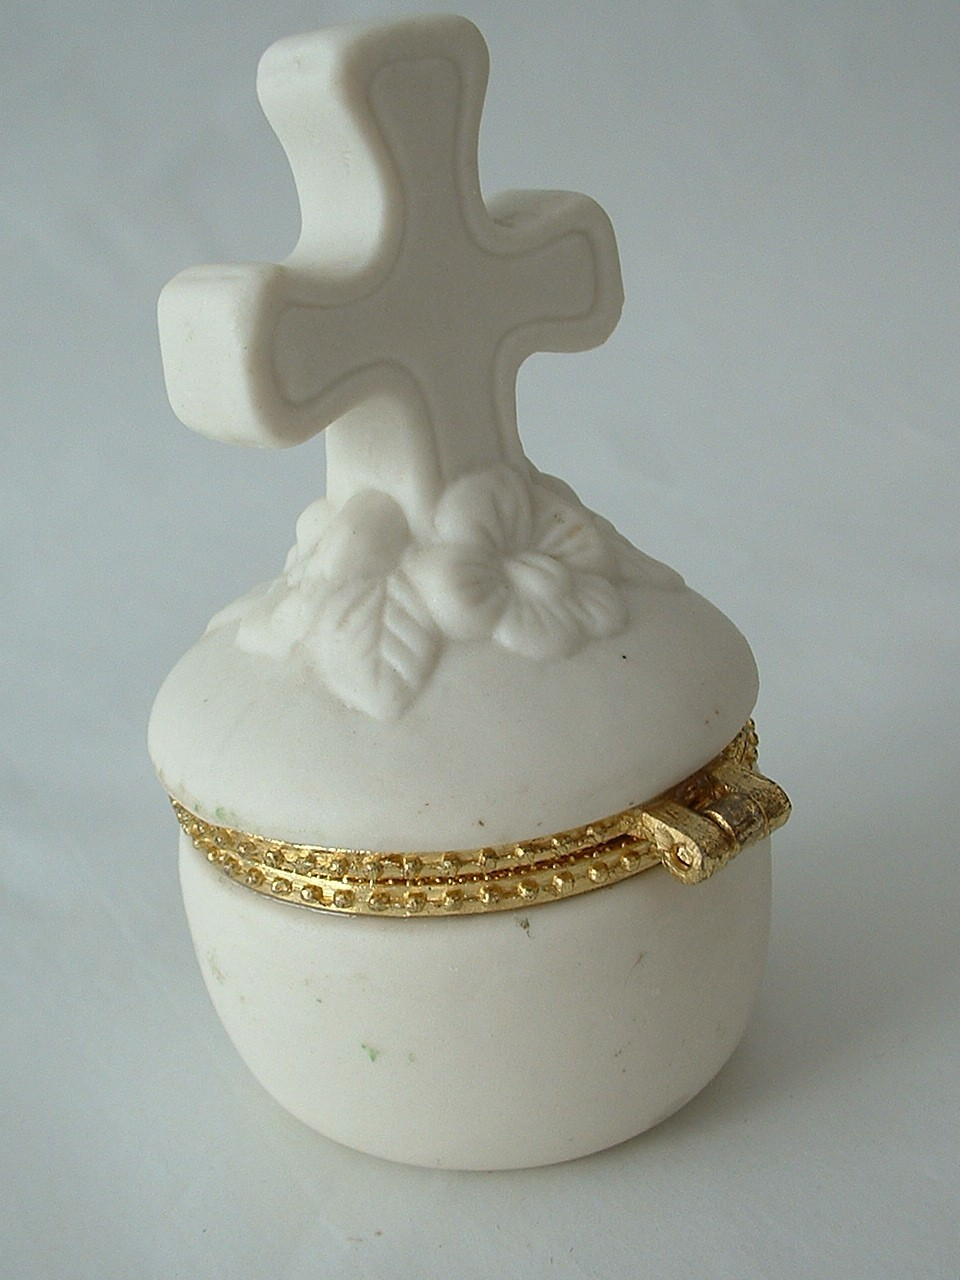 Vintage Porcelain Ring or Trinket Box with Cross